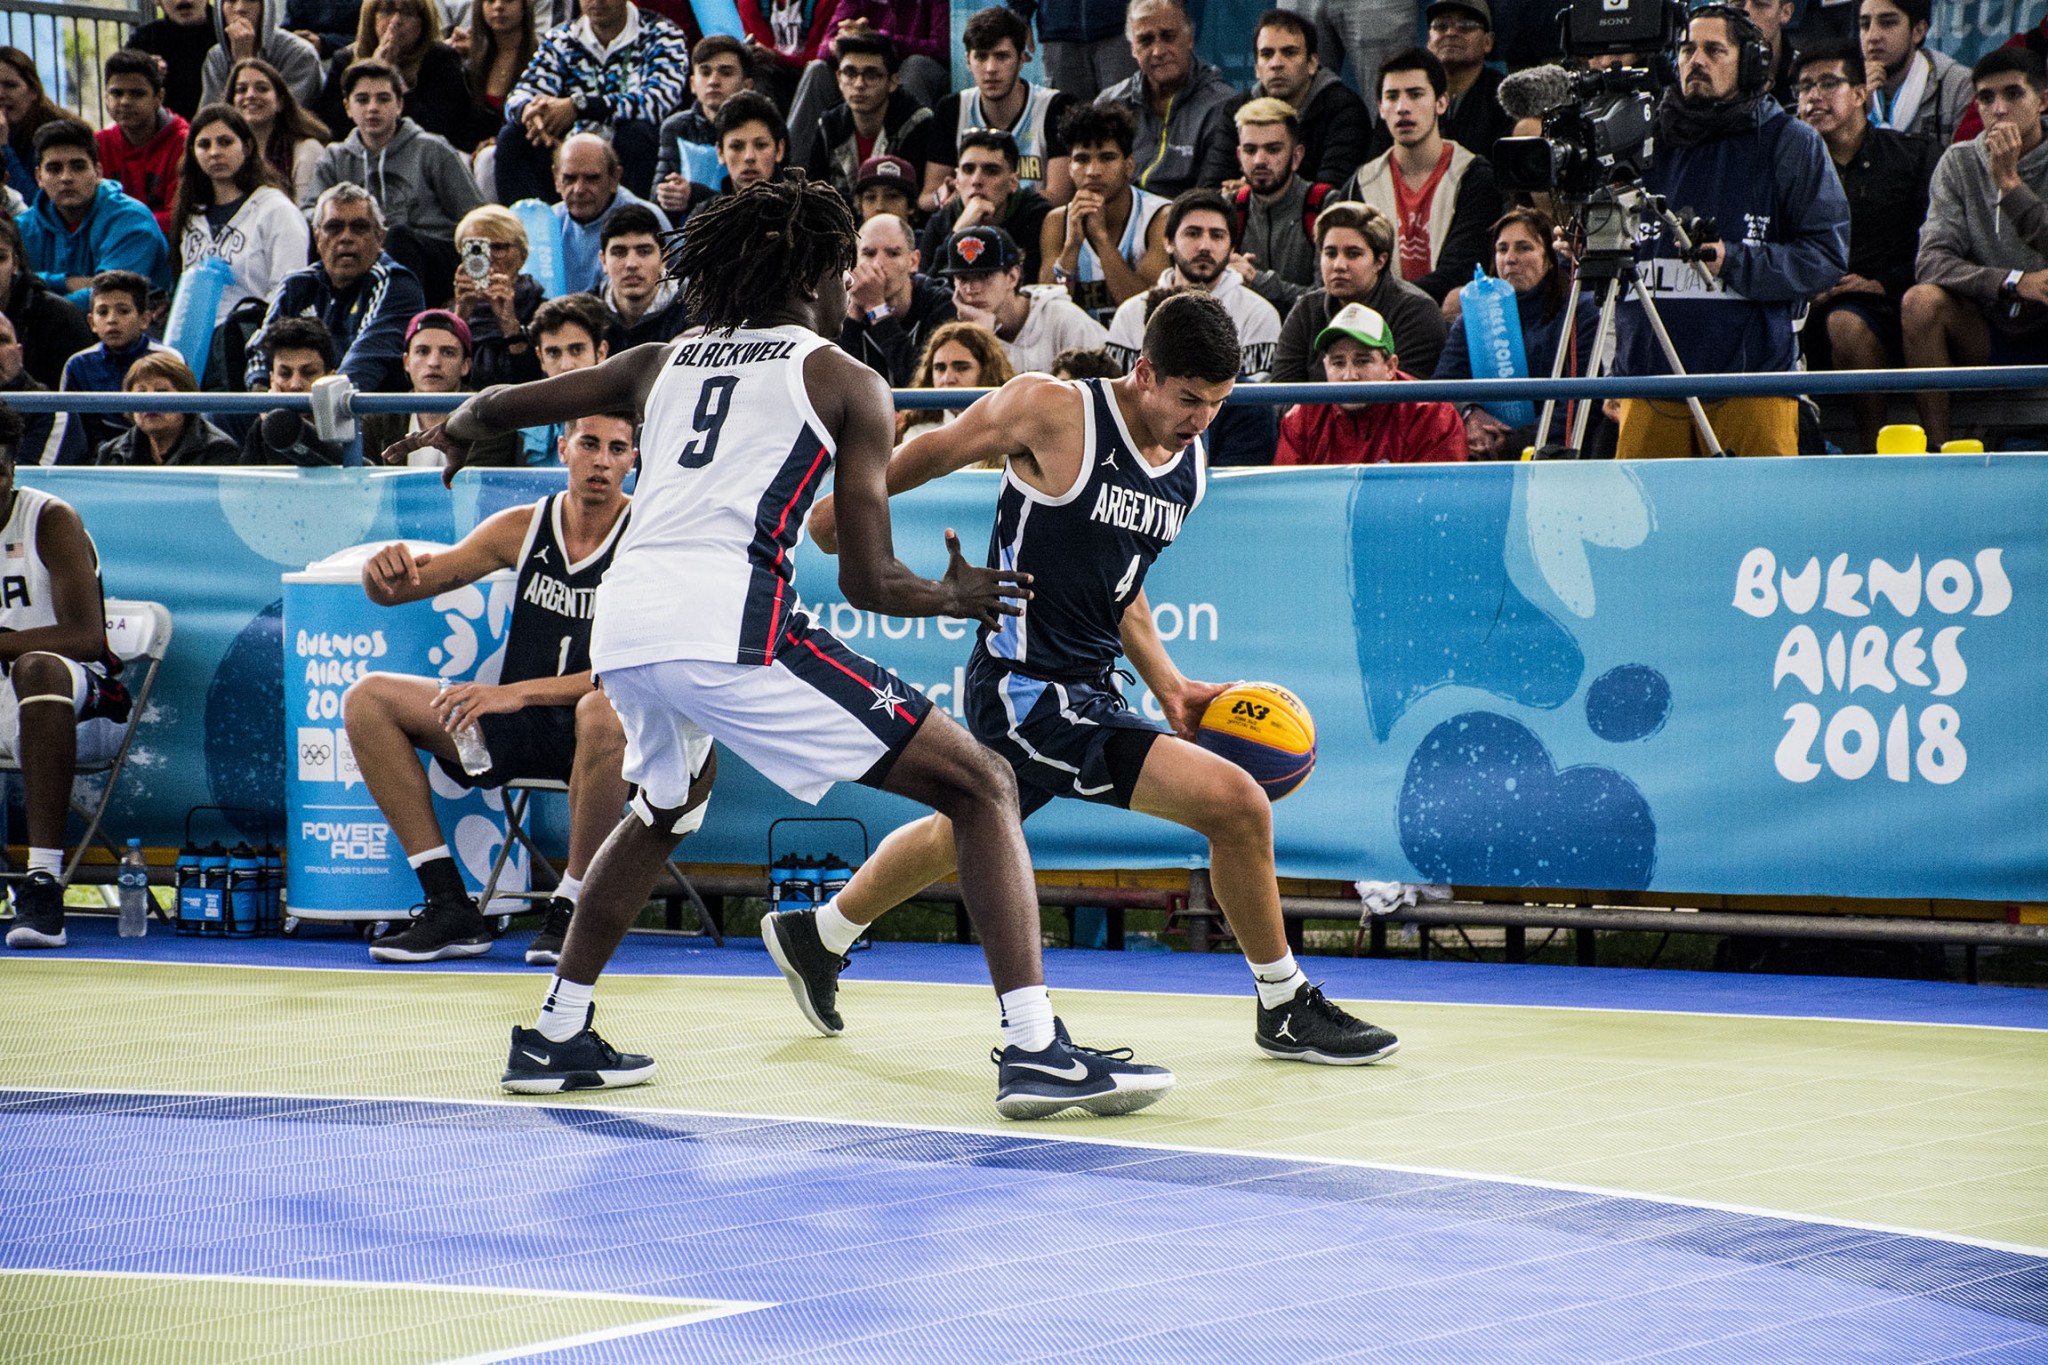 3x3 basketball action continued at the Urban Park ©Buenos Aires 2018